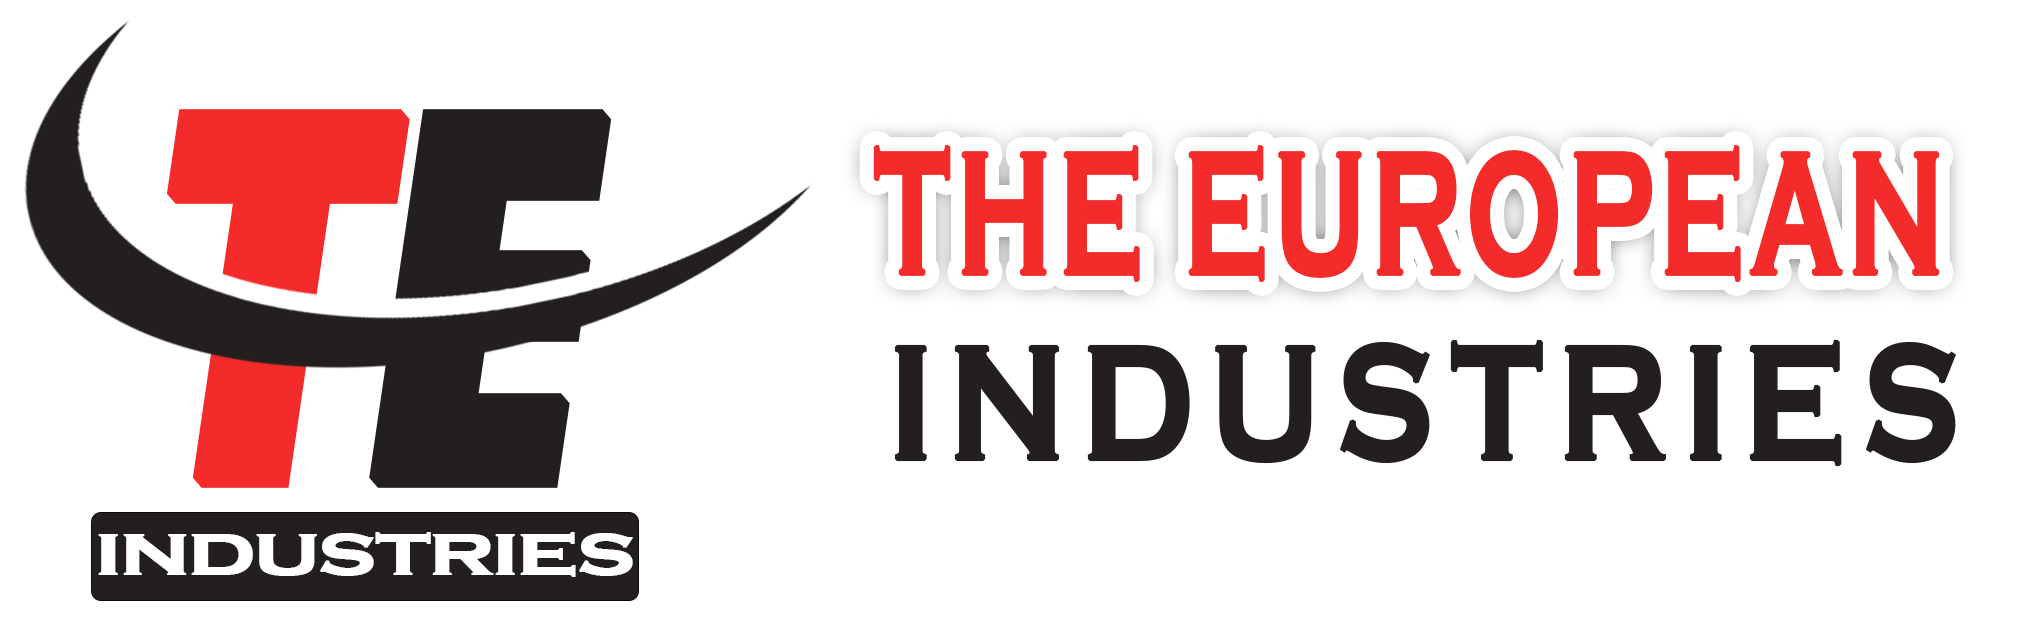 The European Industries